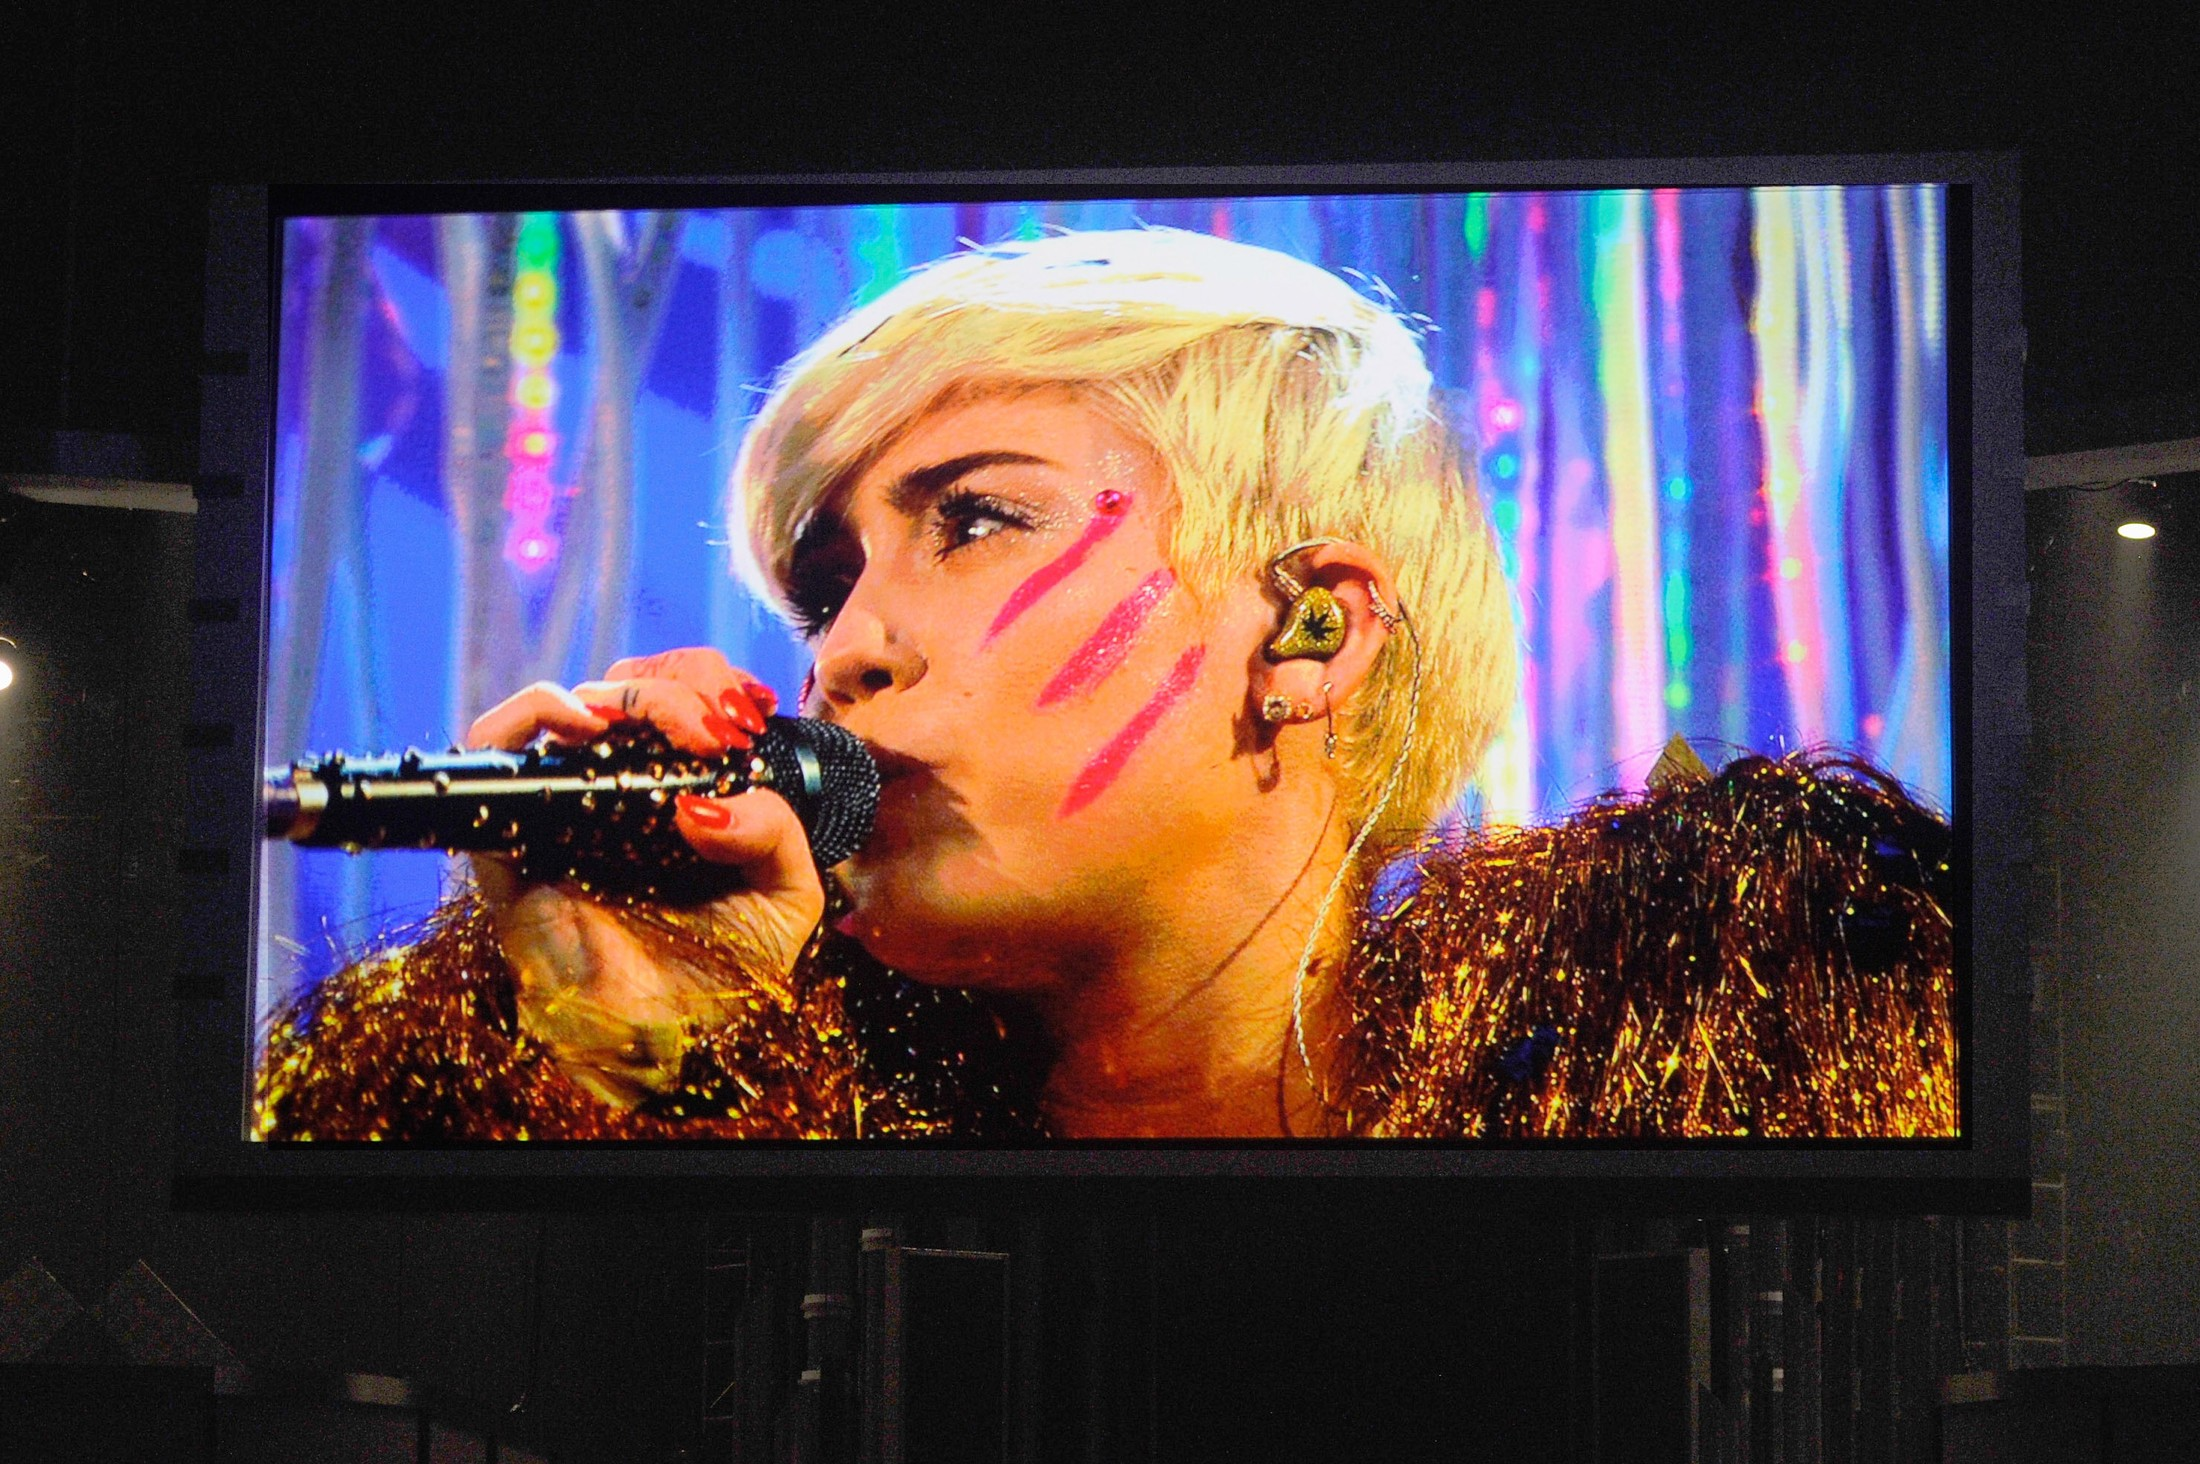 Miley Cyrus Performs at the 2014 Billboard Music Awards